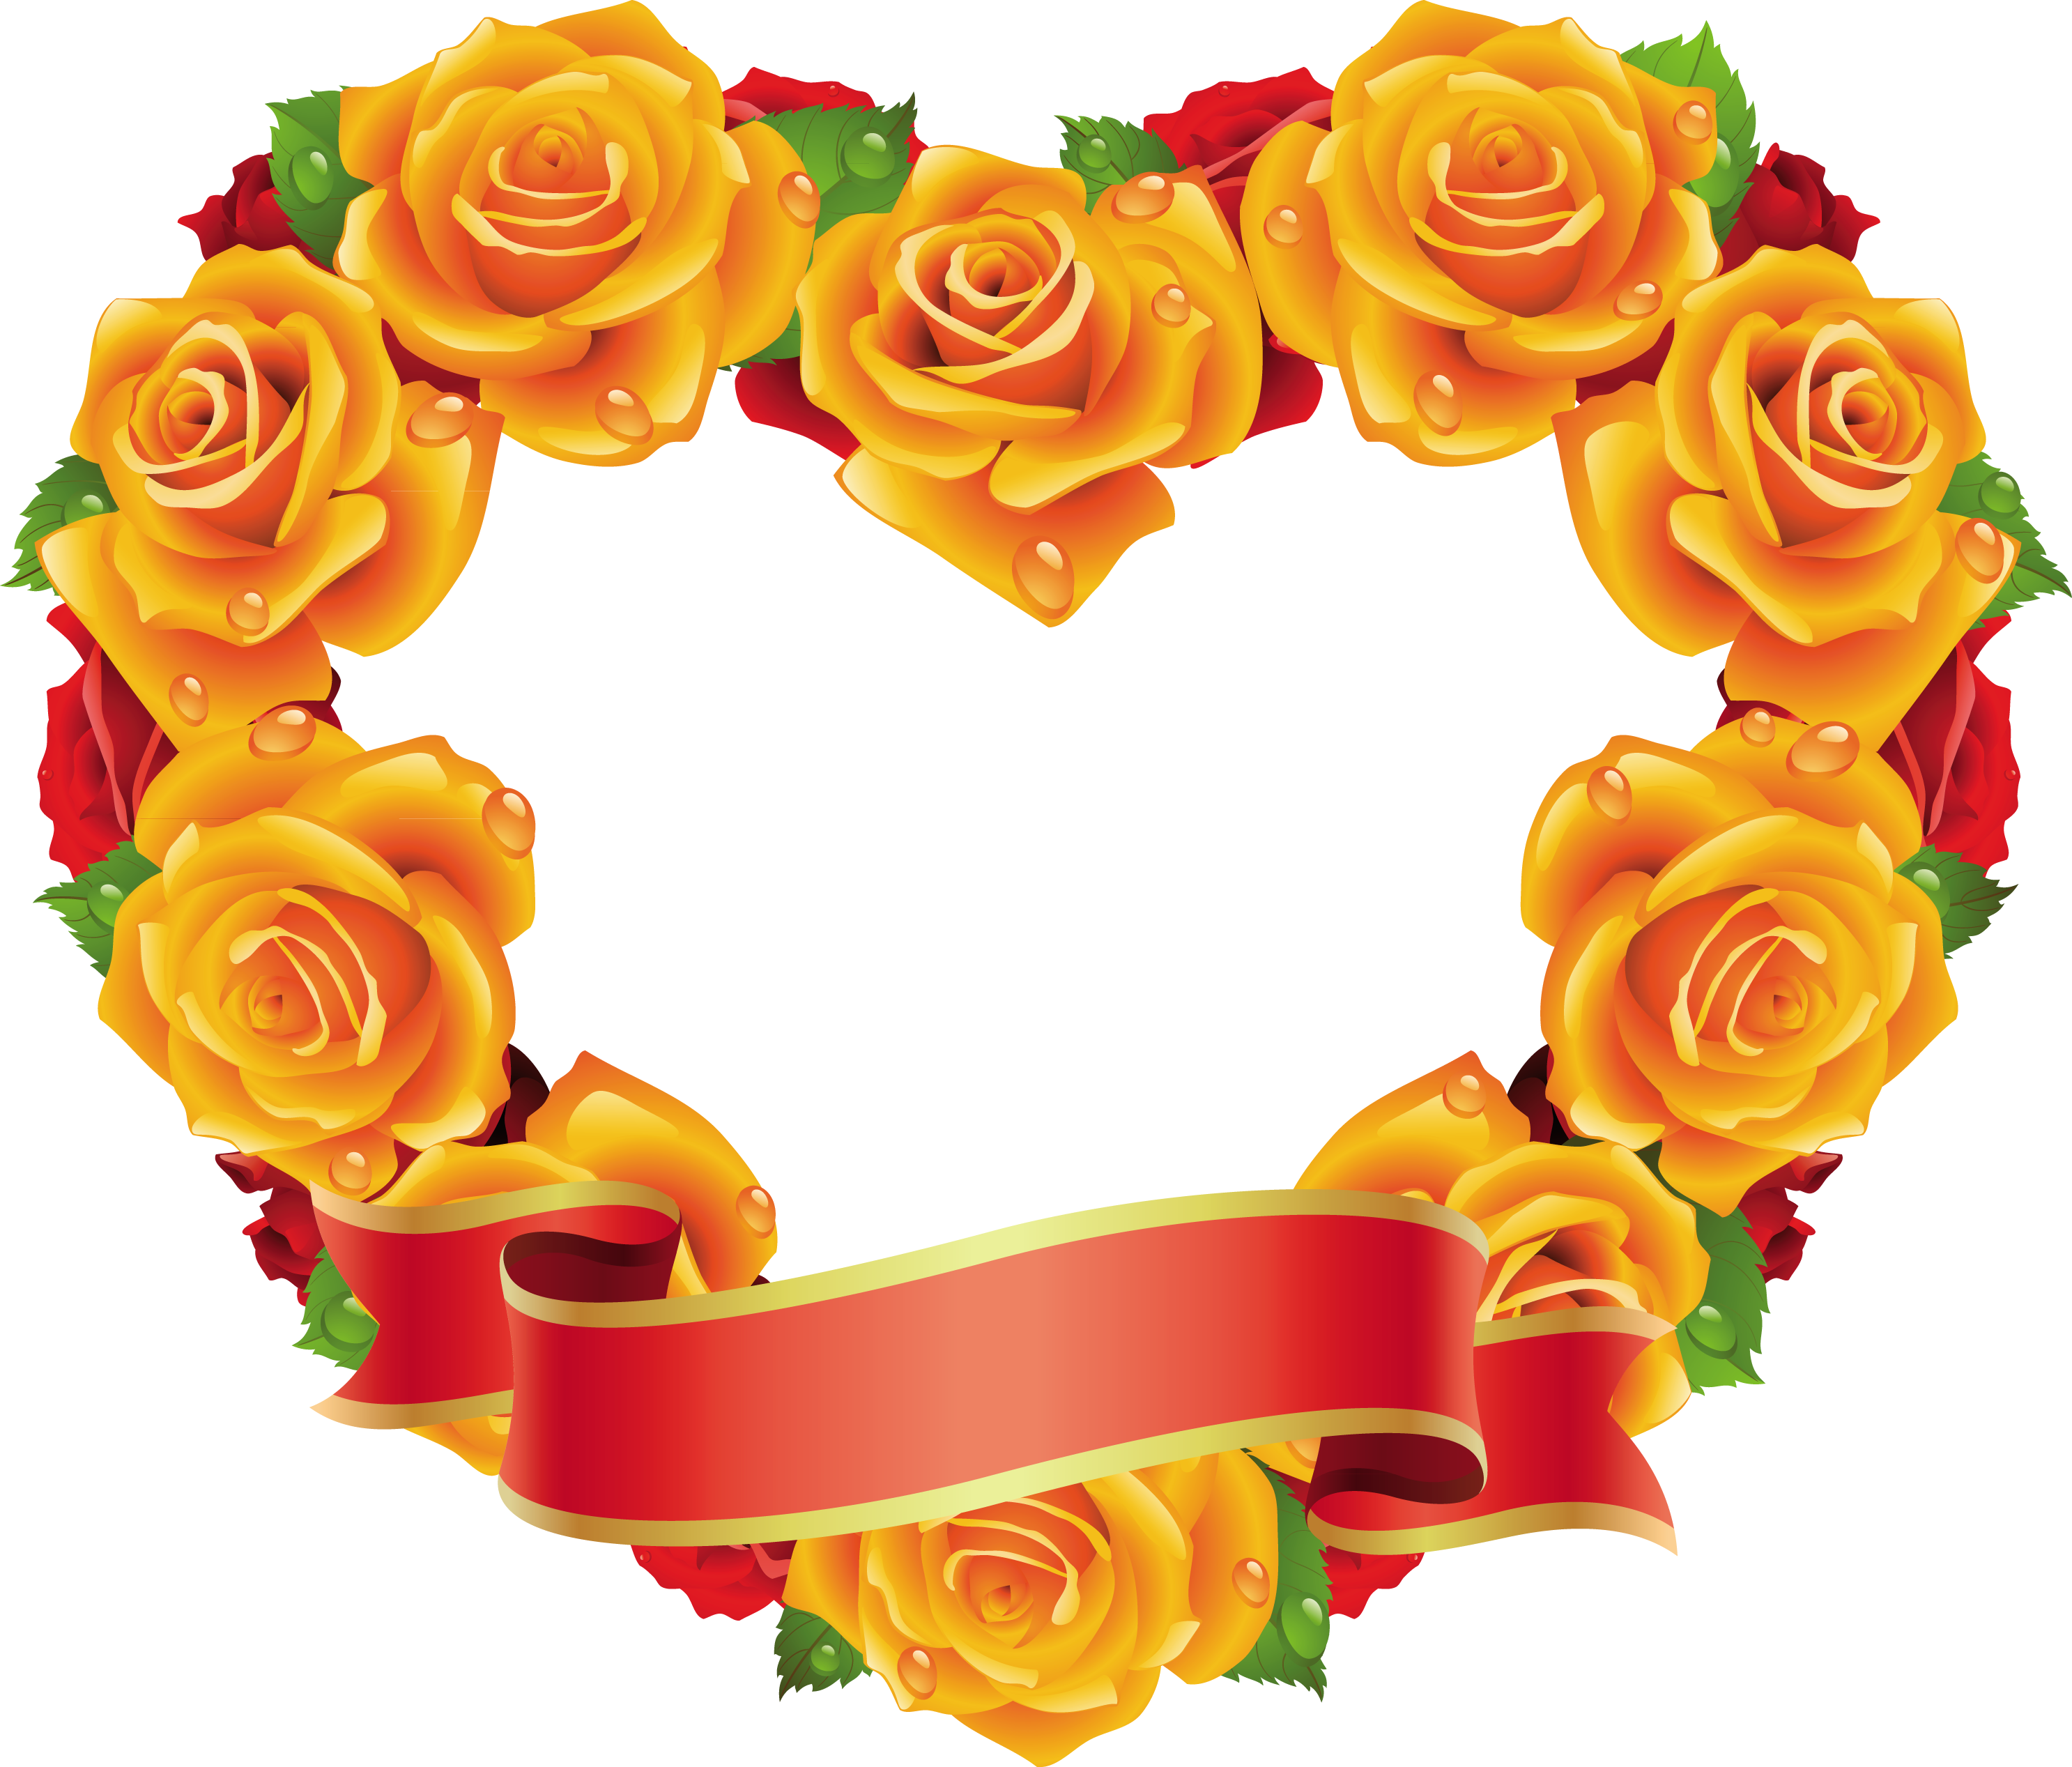 Yellow and Red Roses Heart Transparent Frame | Gallery Yopriceville ... clipart library library